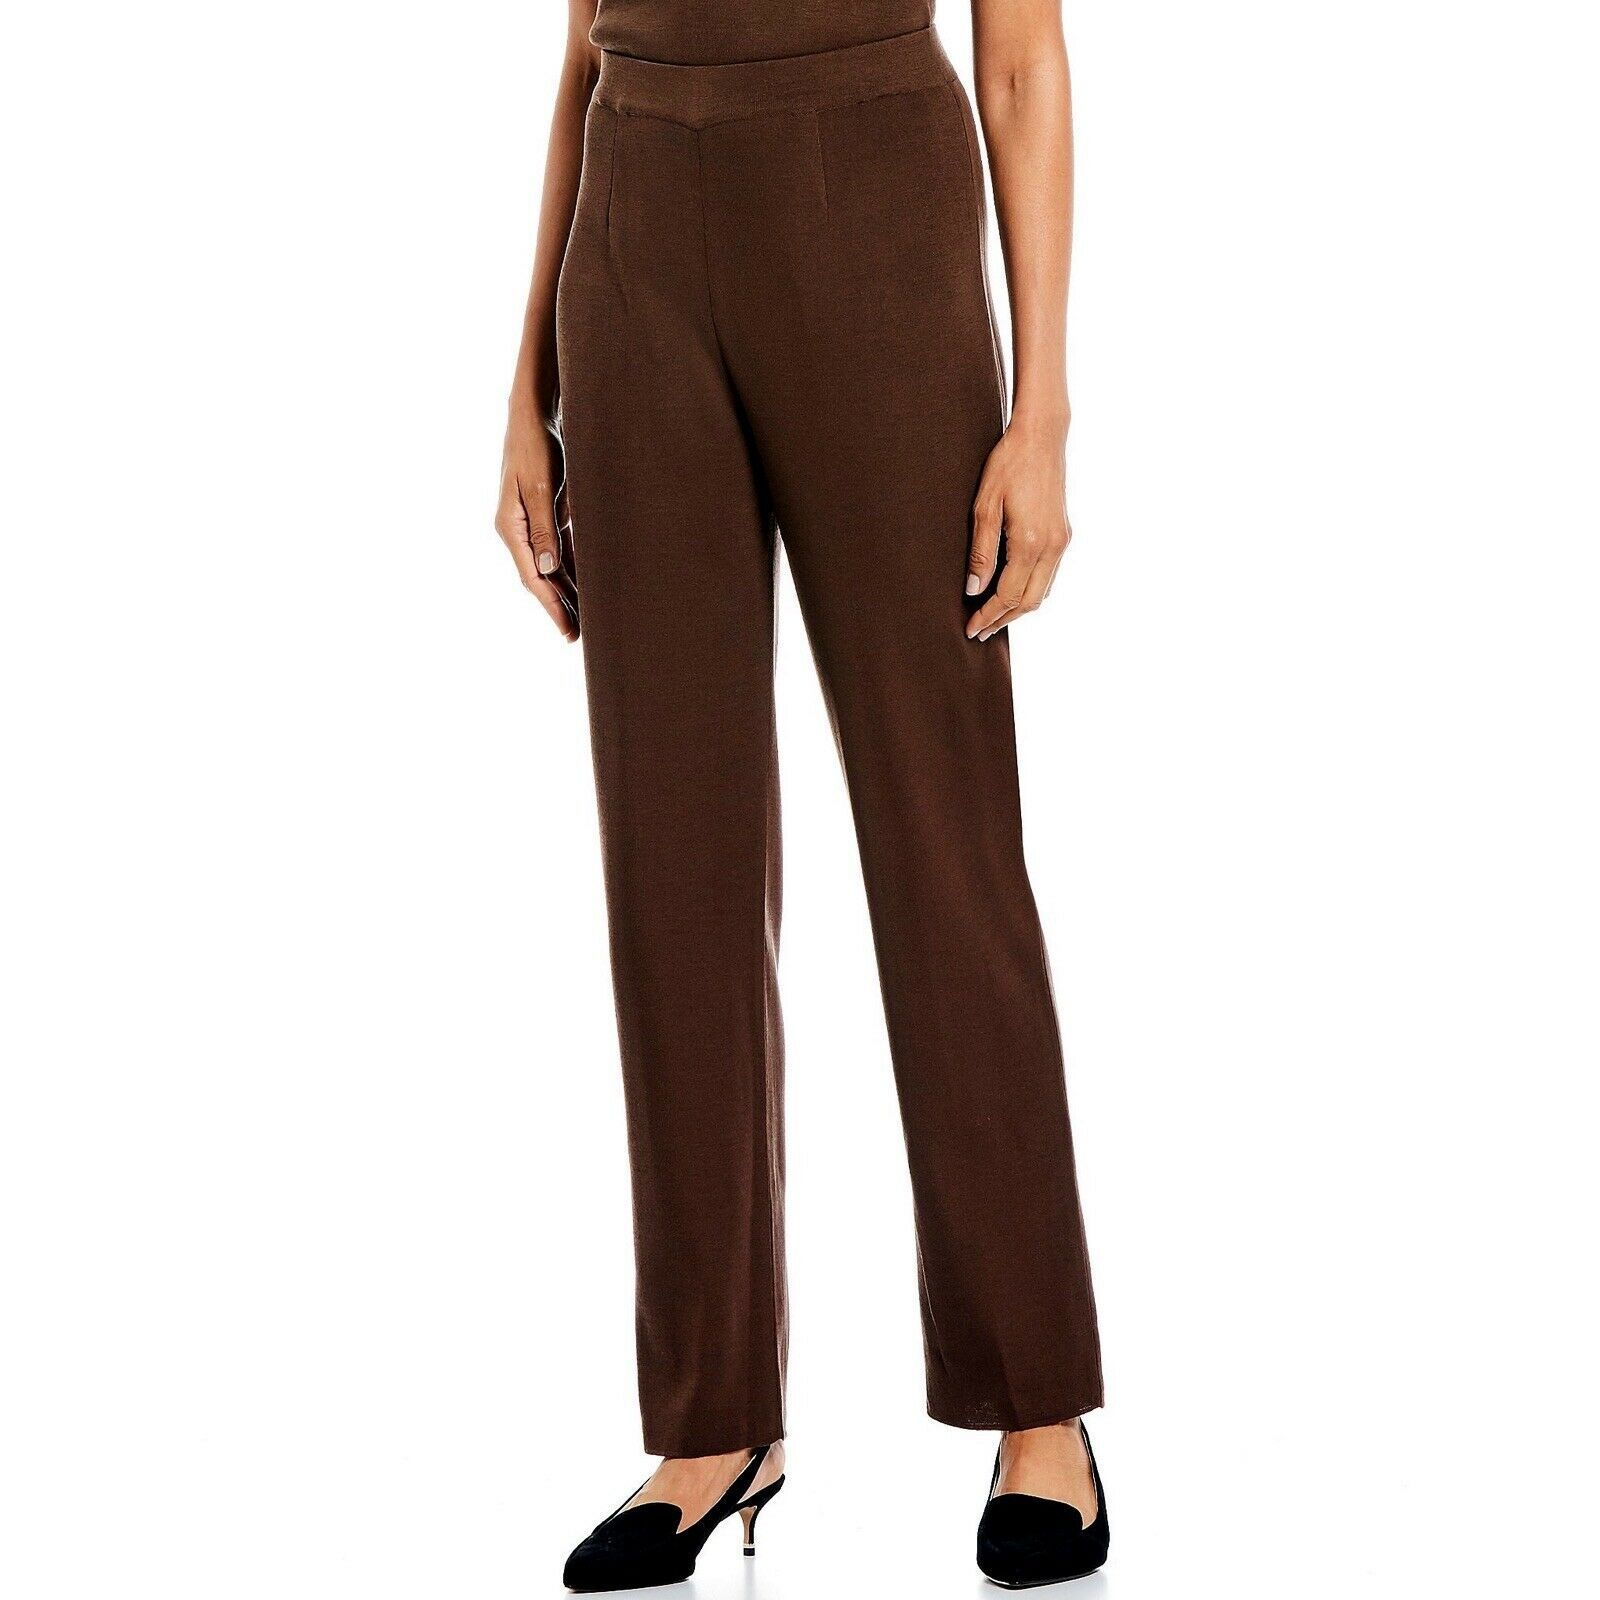 Giorgio Armani Women's Size 40 / Small Brown 100% Wool Dress Pant Trousers Italy